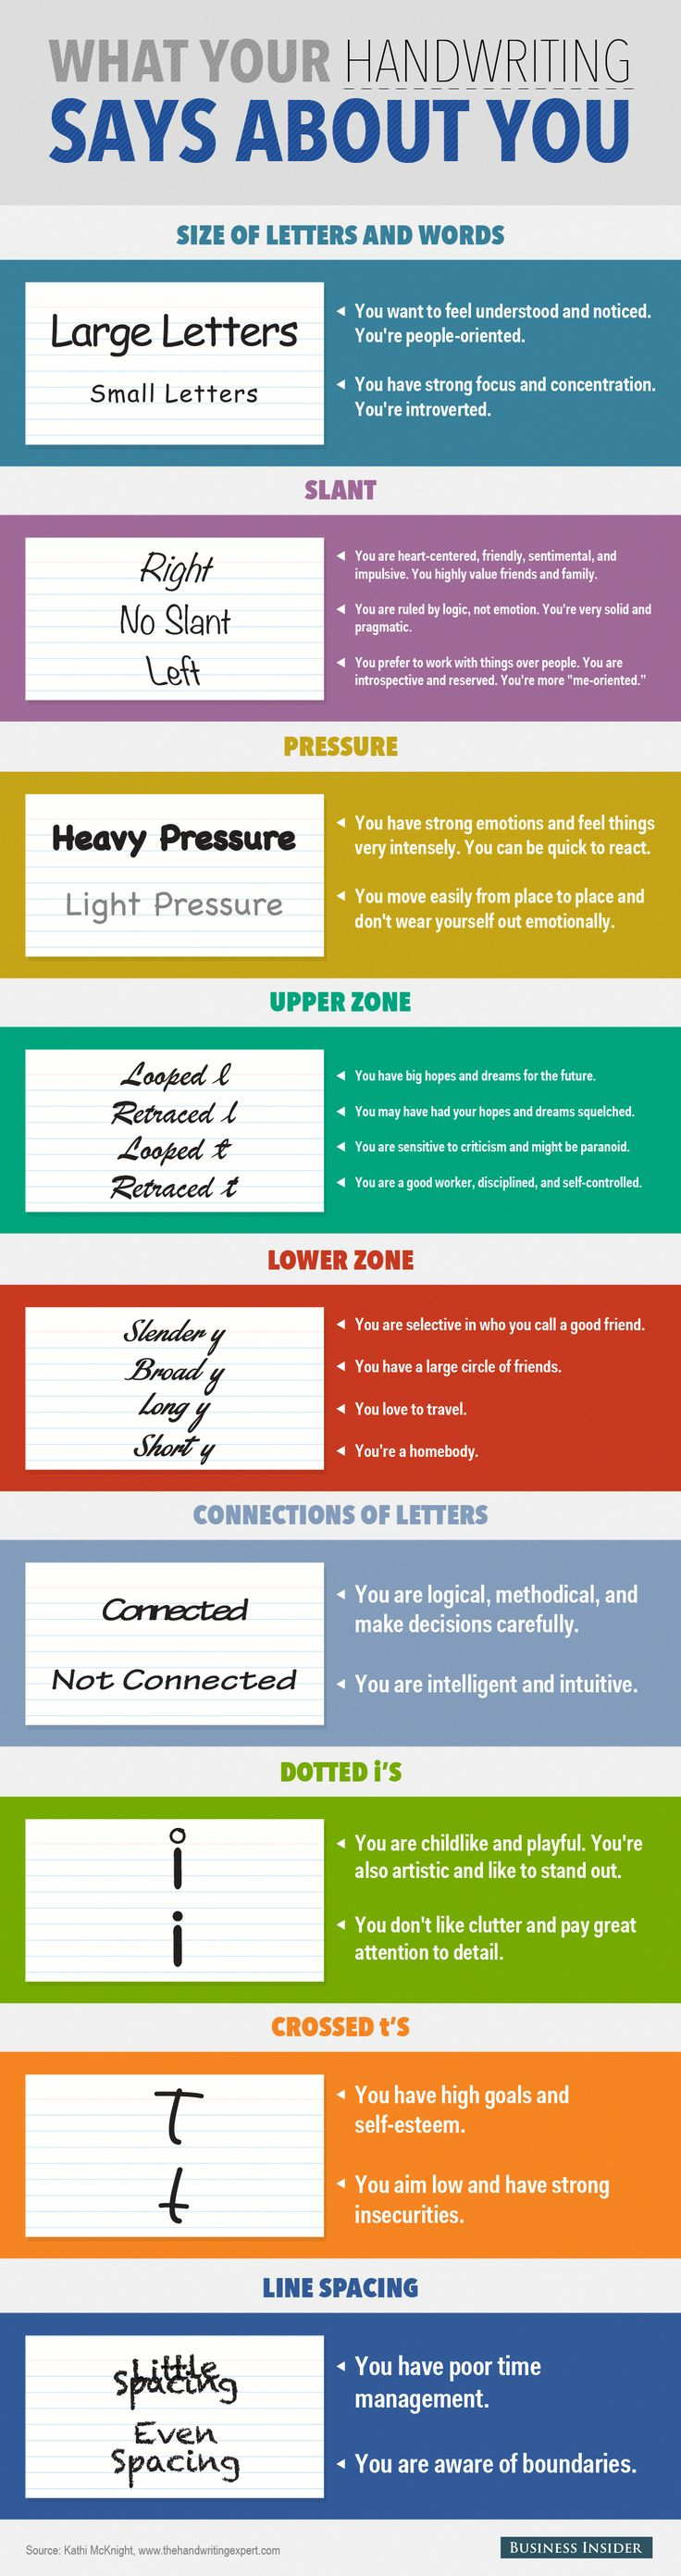 https://infographicnow.com/wp-content/uploads/2019/01/Educational-infographic-What-your-handwriting-says-about-you.-Via-@businessinsider.-facts-infographics-signlanguageinfographic.jpg